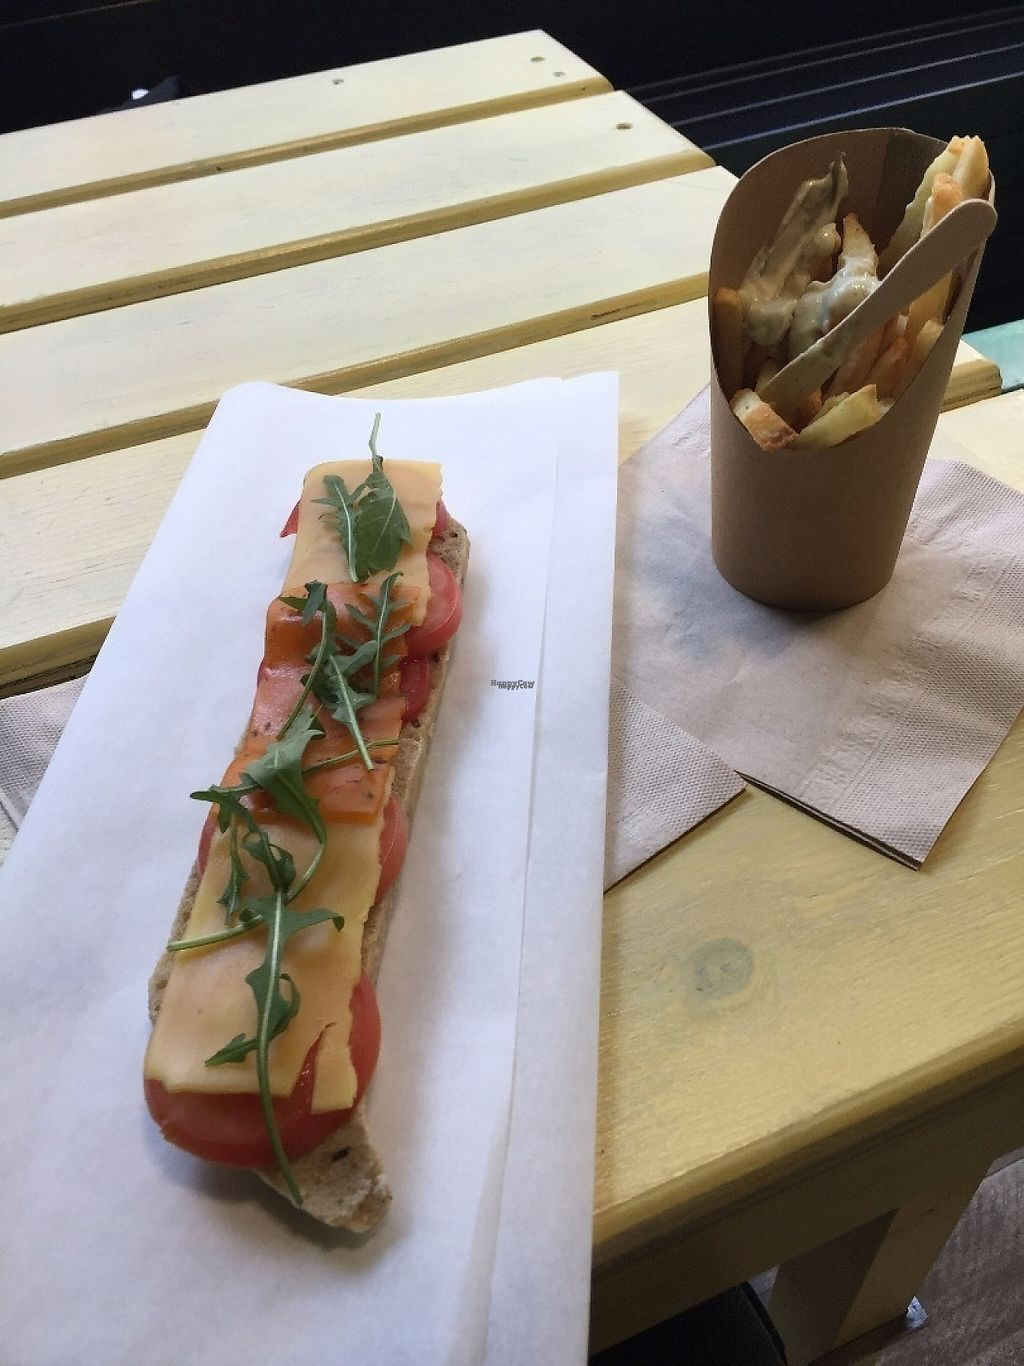 """Photo of CLOSED: VegVeg  by <a href=""""/members/profile/rackoo"""">rackoo</a> <br/>Sandwich + fries <br/> December 13, 2016  - <a href='/contact/abuse/image/66860/200601'>Report</a>"""